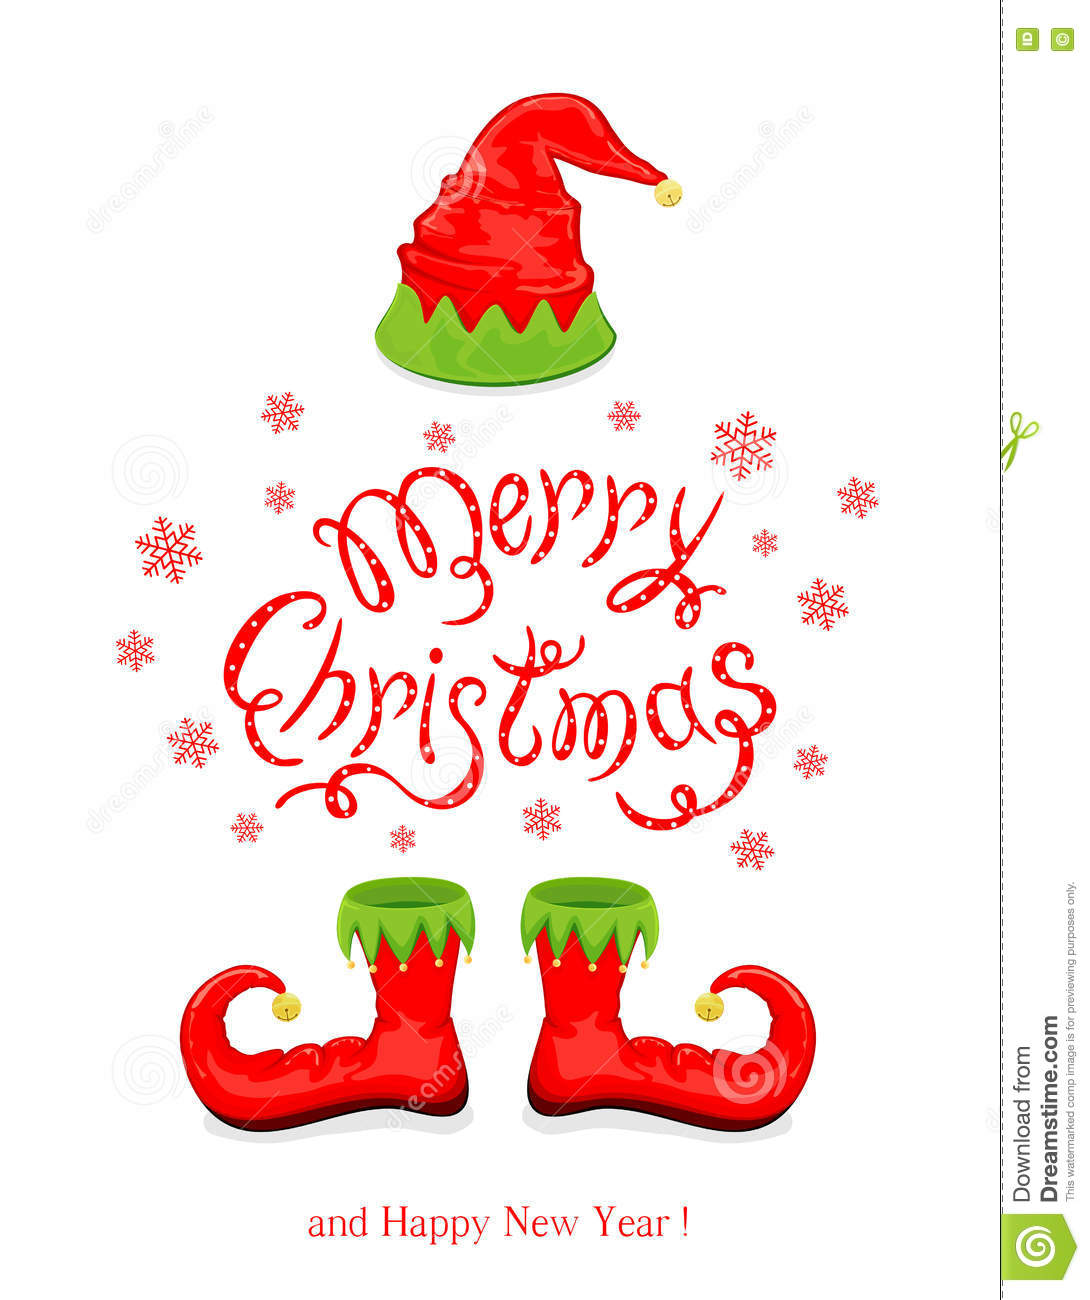 Merry Christmas with red hat and shoes elf